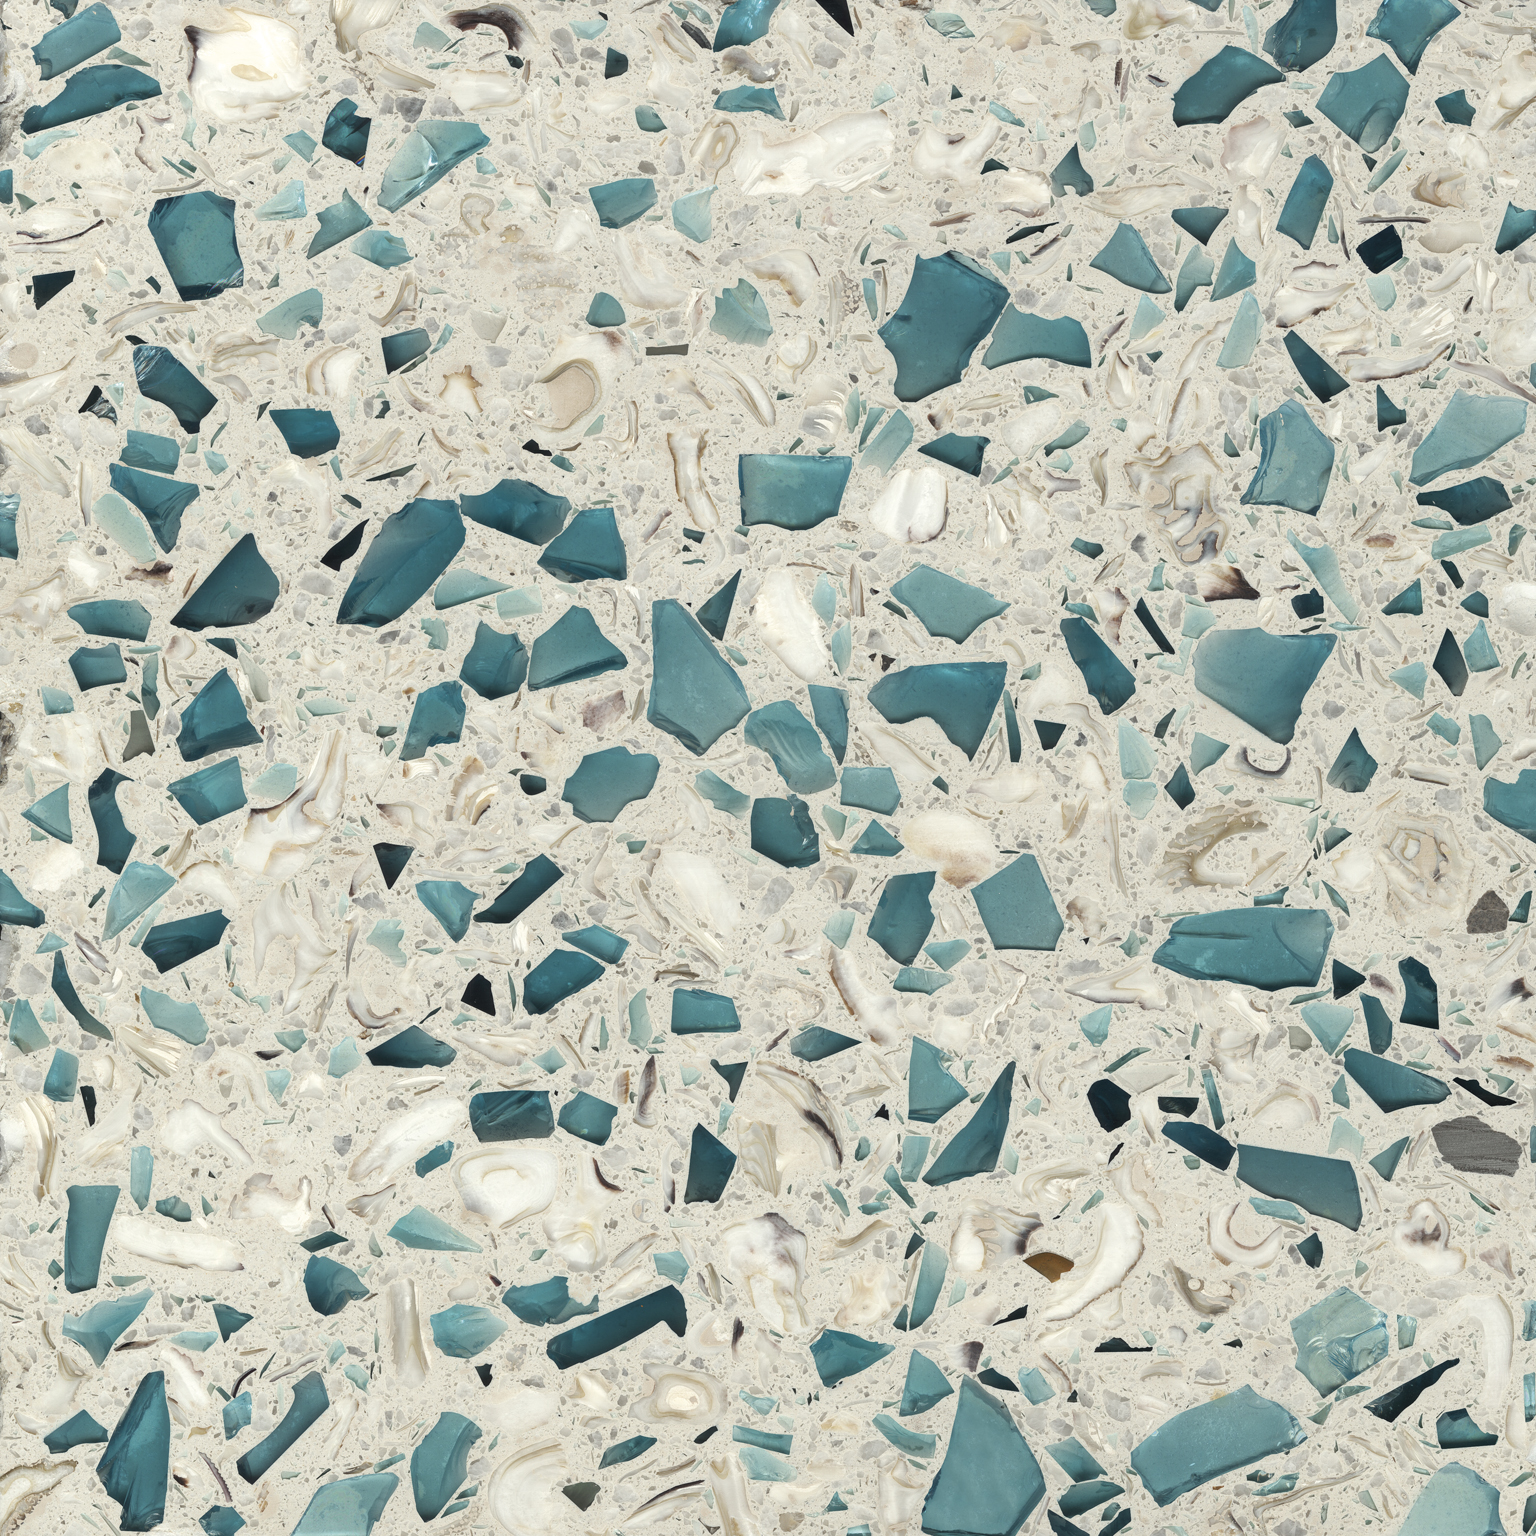 Vetrazzo, The Original Recycled Glass Countertop: Raise Your Glass ...